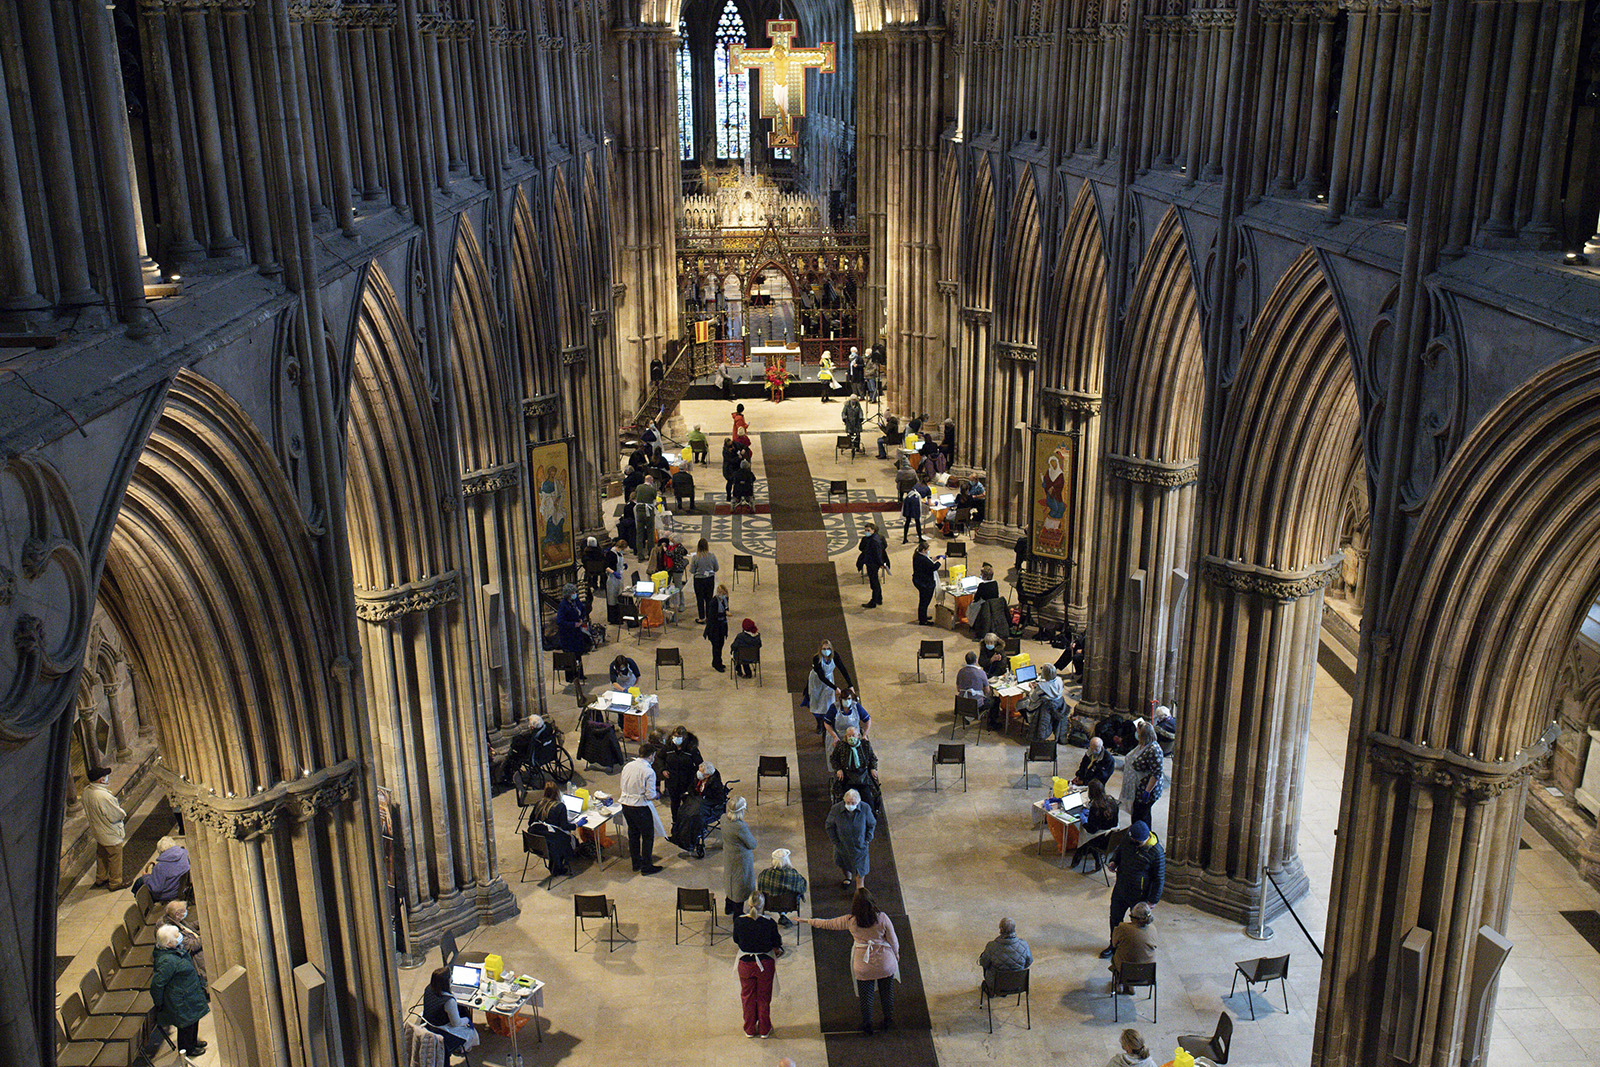 Members of the public receive the Oxford/AstraZeneca coronavirus vaccine at Lichfield Cathedral, in Staffordshire, England, on Friday, January 15.